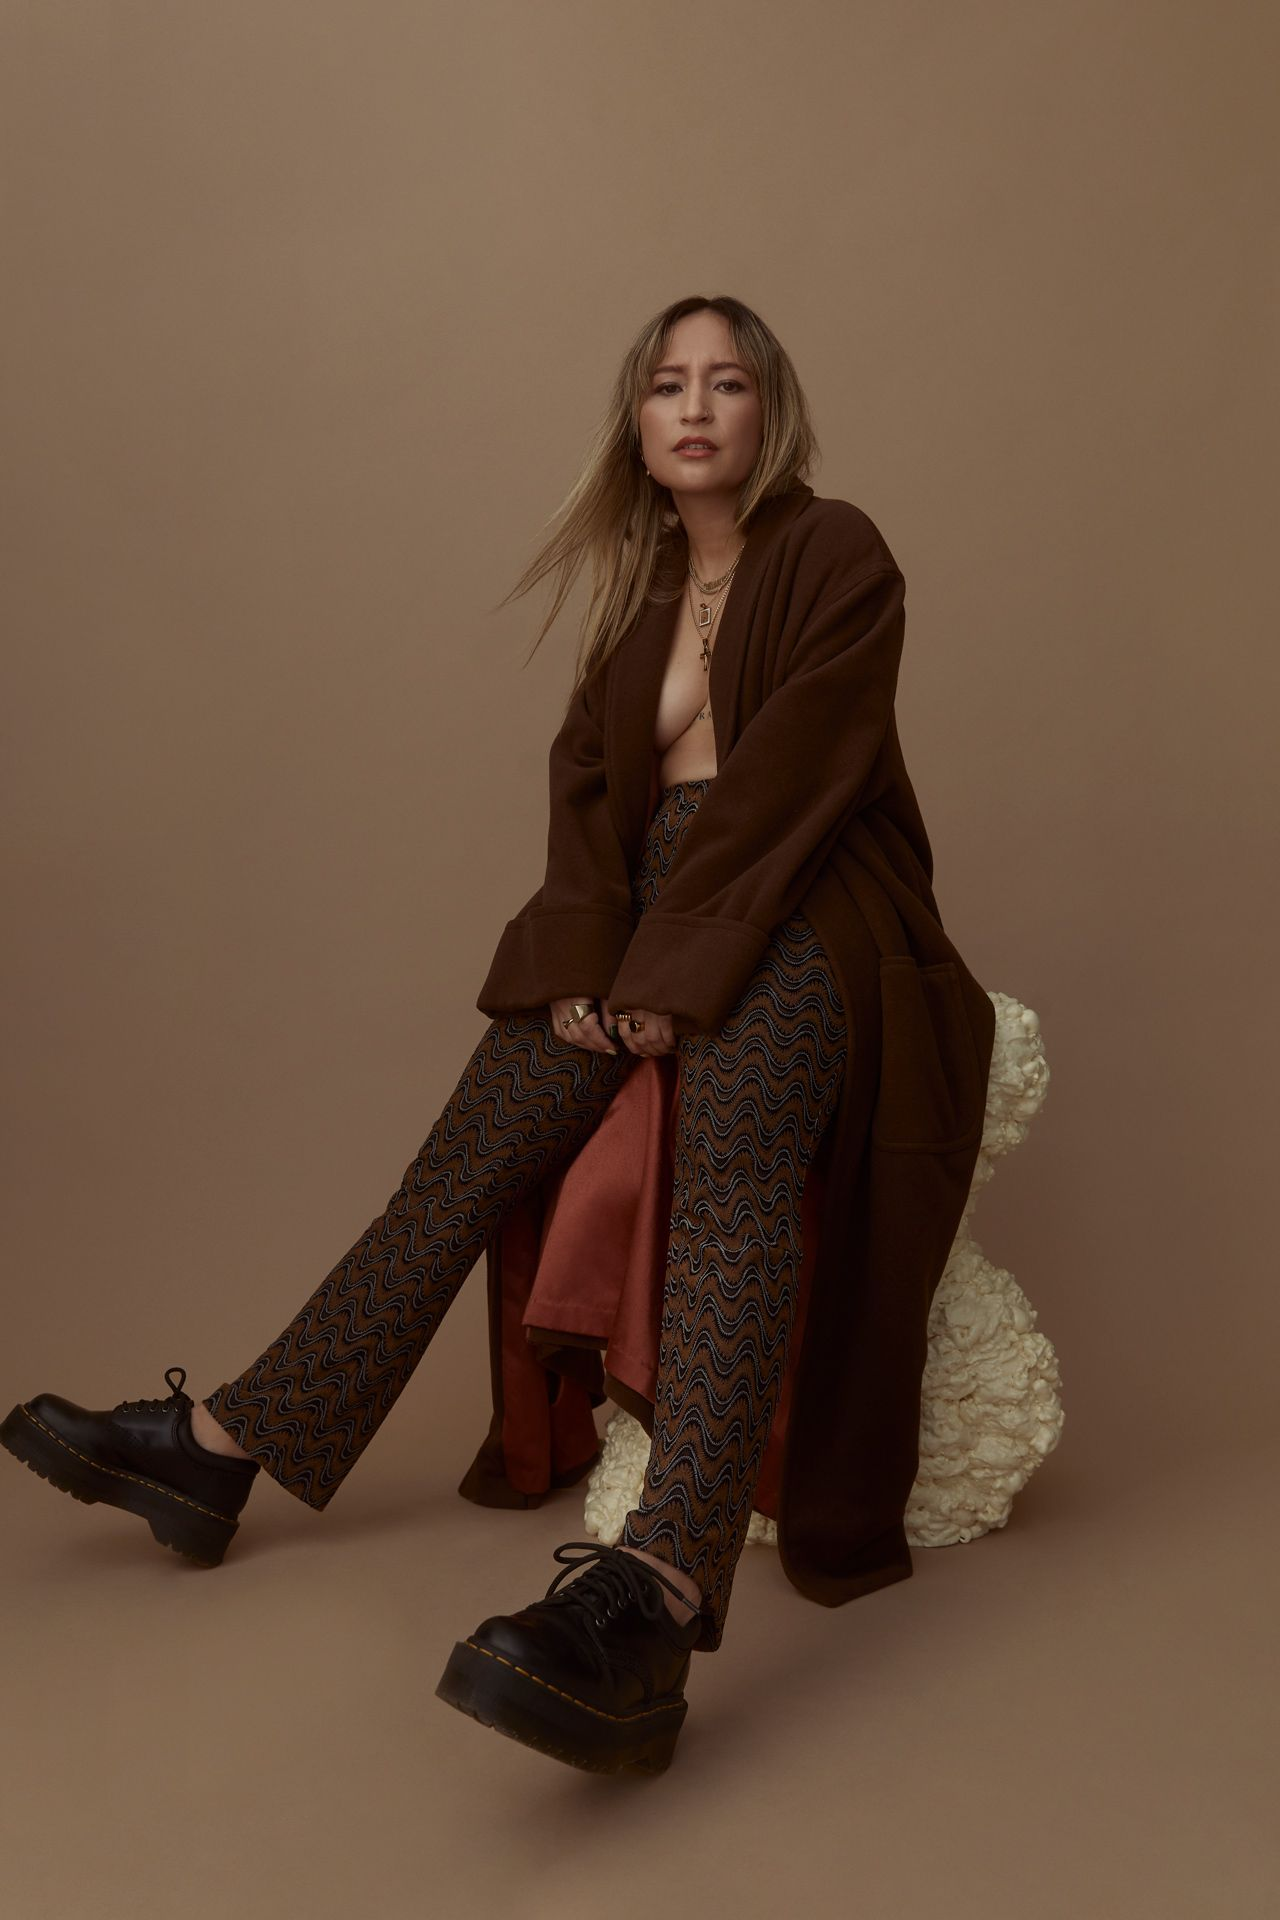 blonde female model sitting on rock wearing long large brown coat with wavy patterned shirt and platform doc martens looking at camera on beige background photographed by Kelly Jacob for LEV